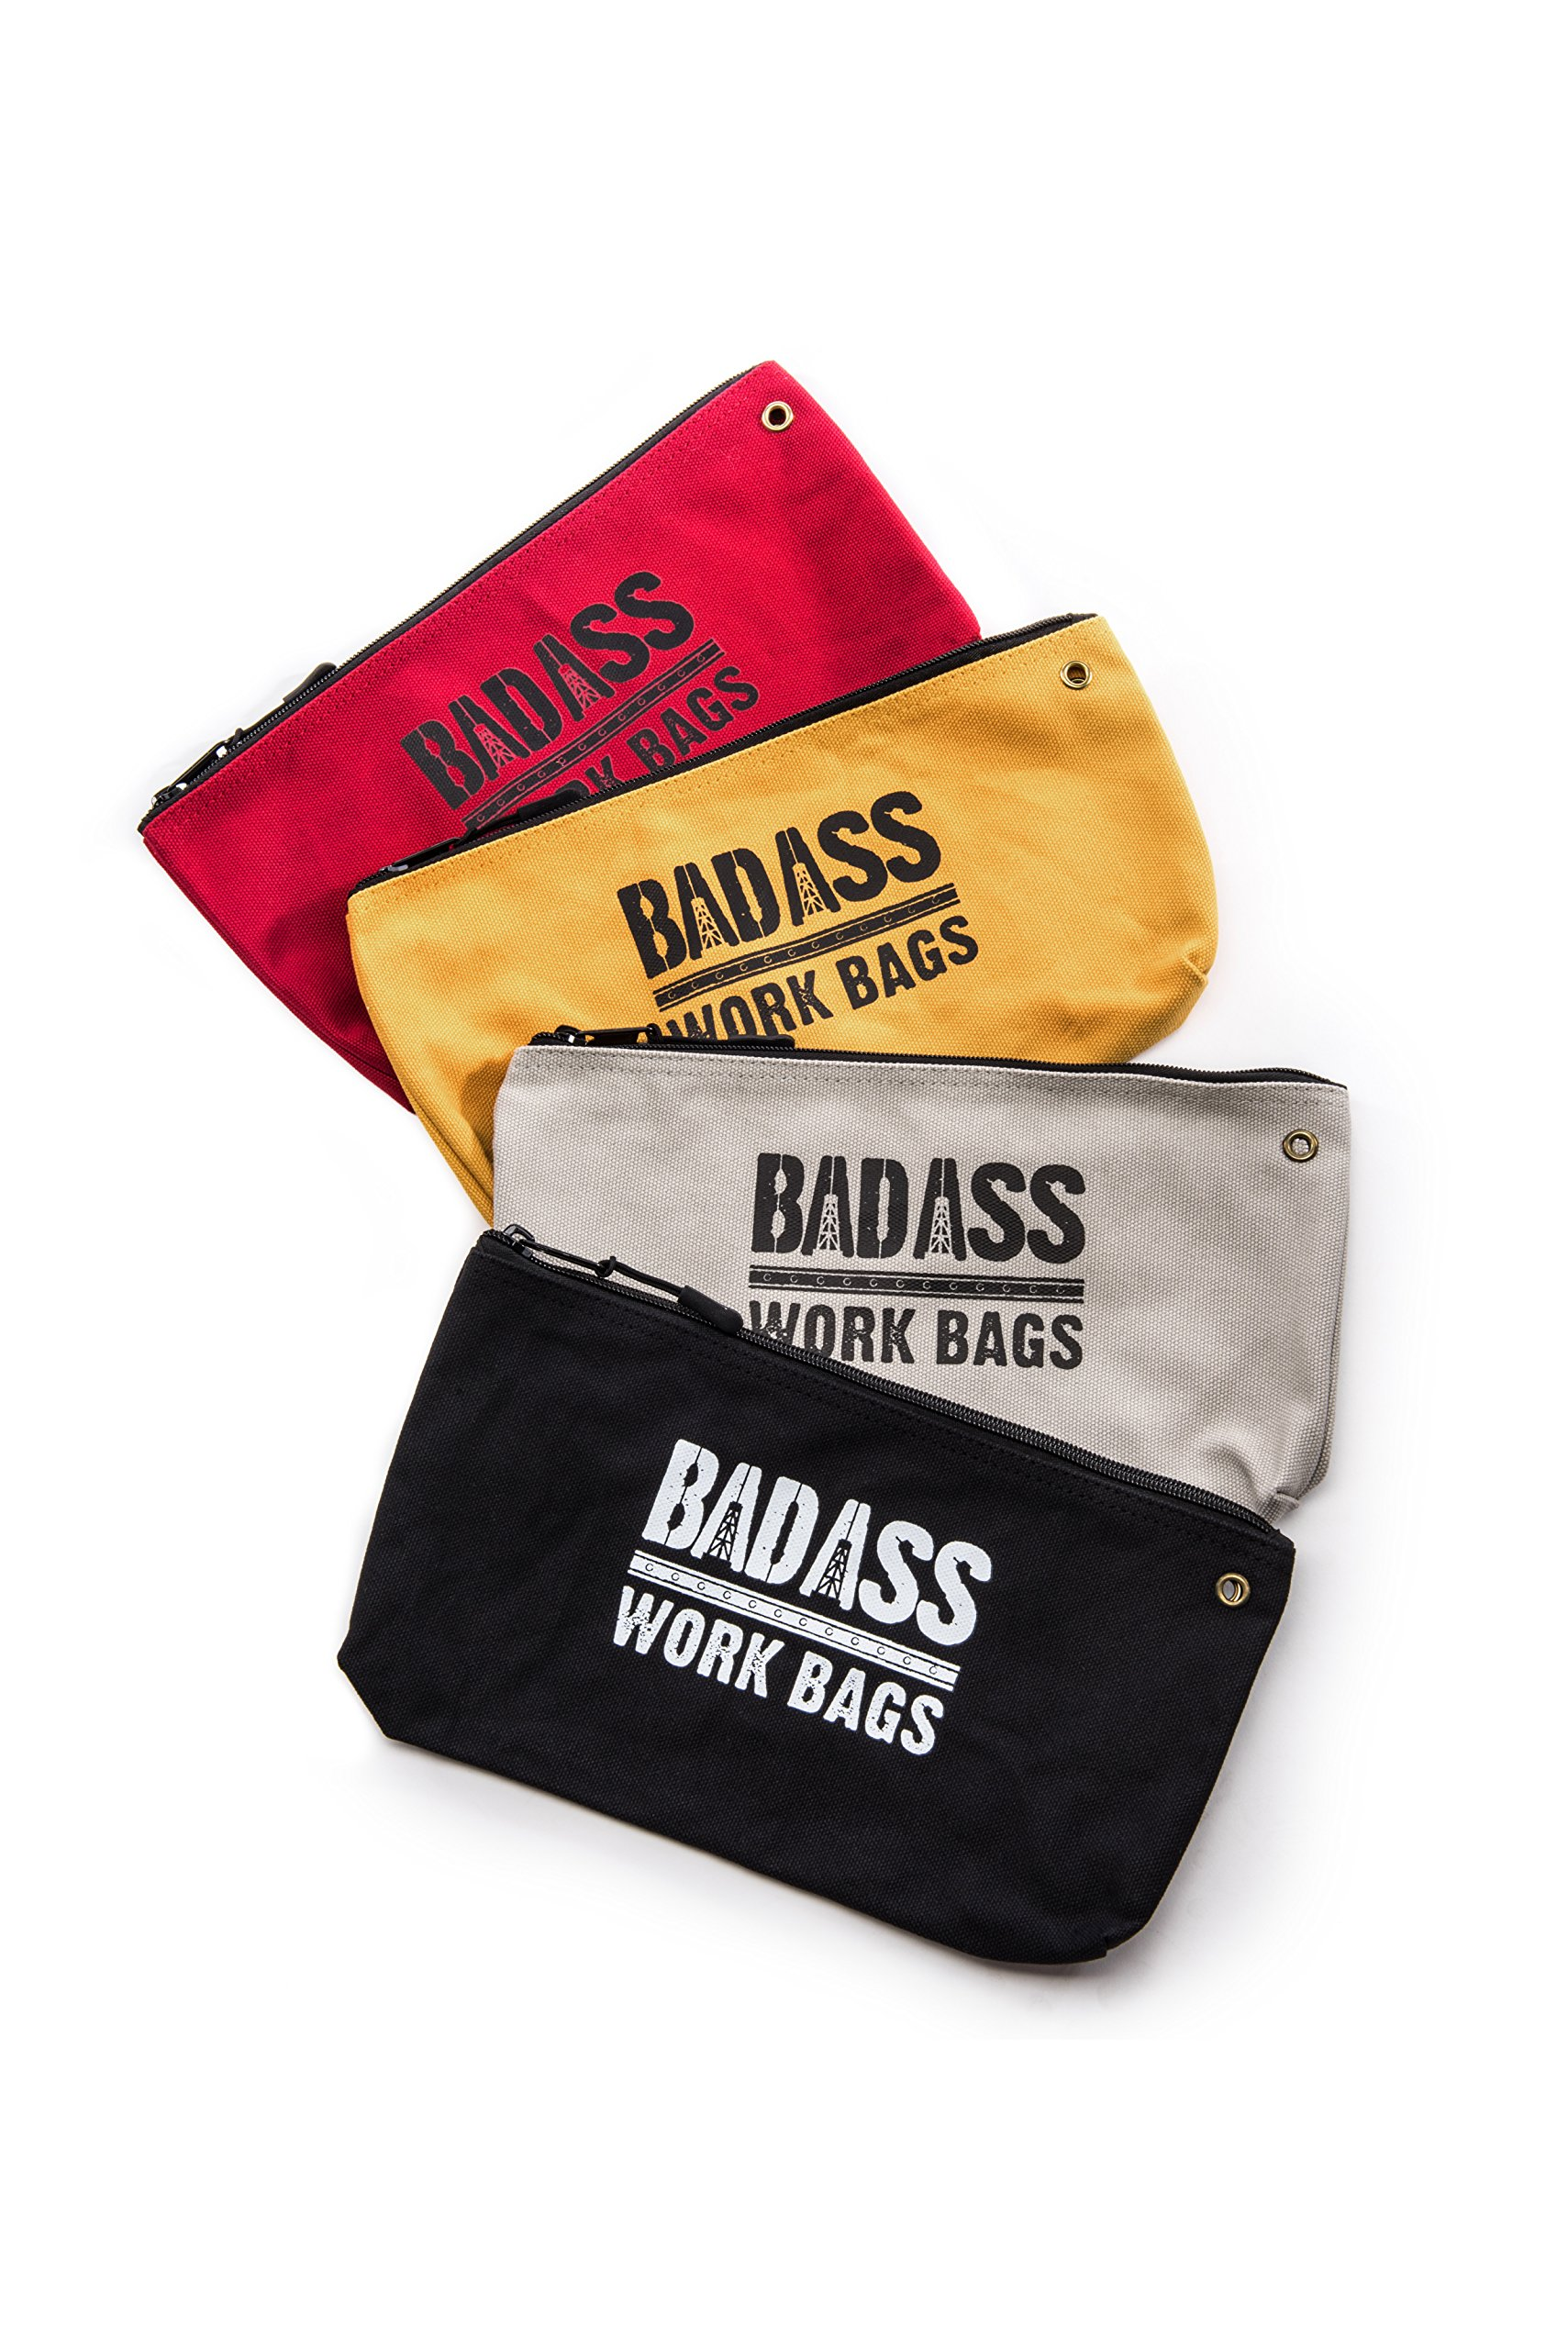 Bad Ass Work Gear   4-Pack of Heavy Duty 20 oz. Canvas Zipper Tool Bags in 4 colors   Toughest Utility Bag by Bad Ass Work Gear (Image #1)